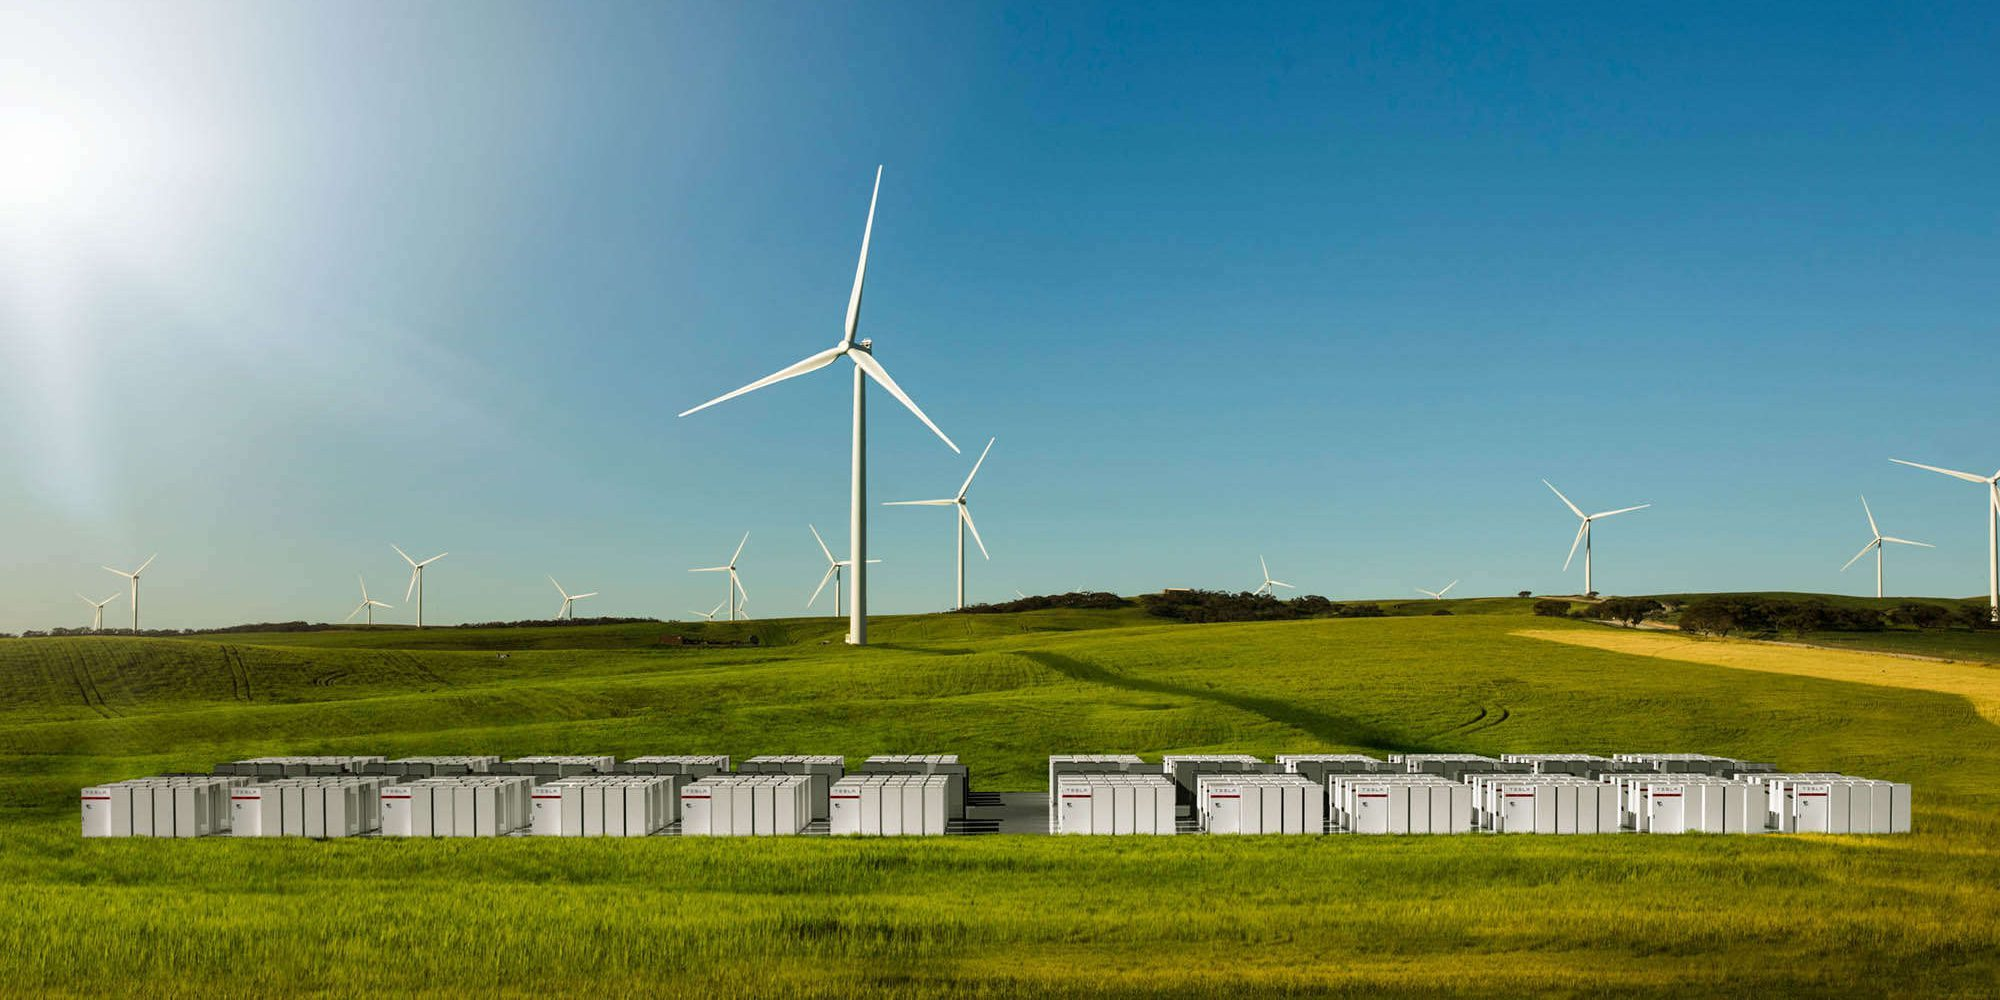 tesla battery storage australia field renewable eneryg wind turbine